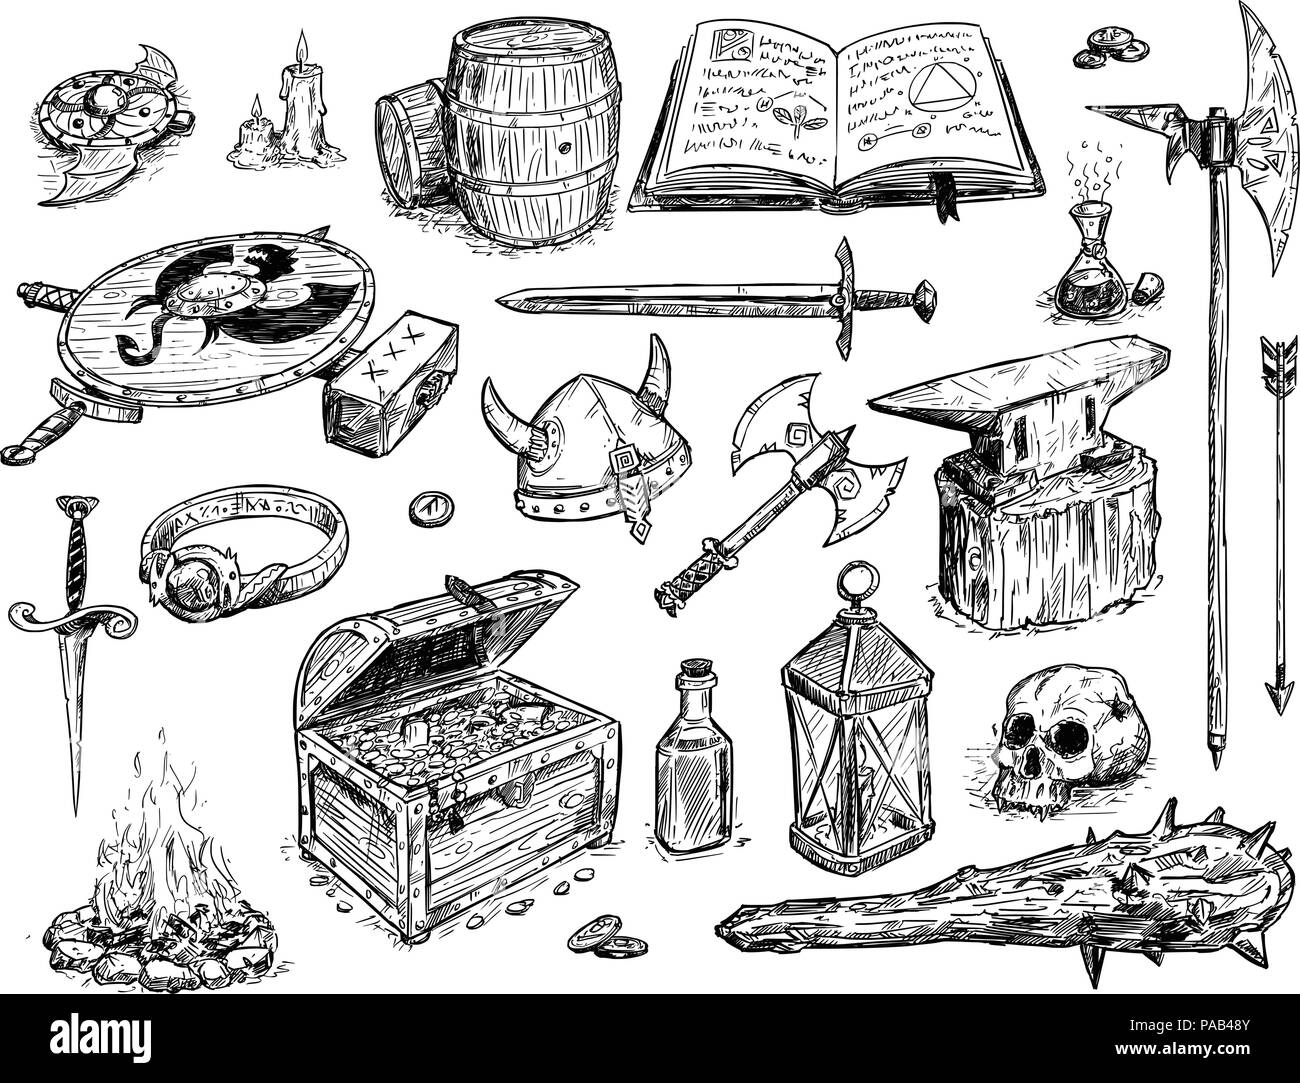 Vector Drawing Illustration of Fantasy Set Prop - Stock Image